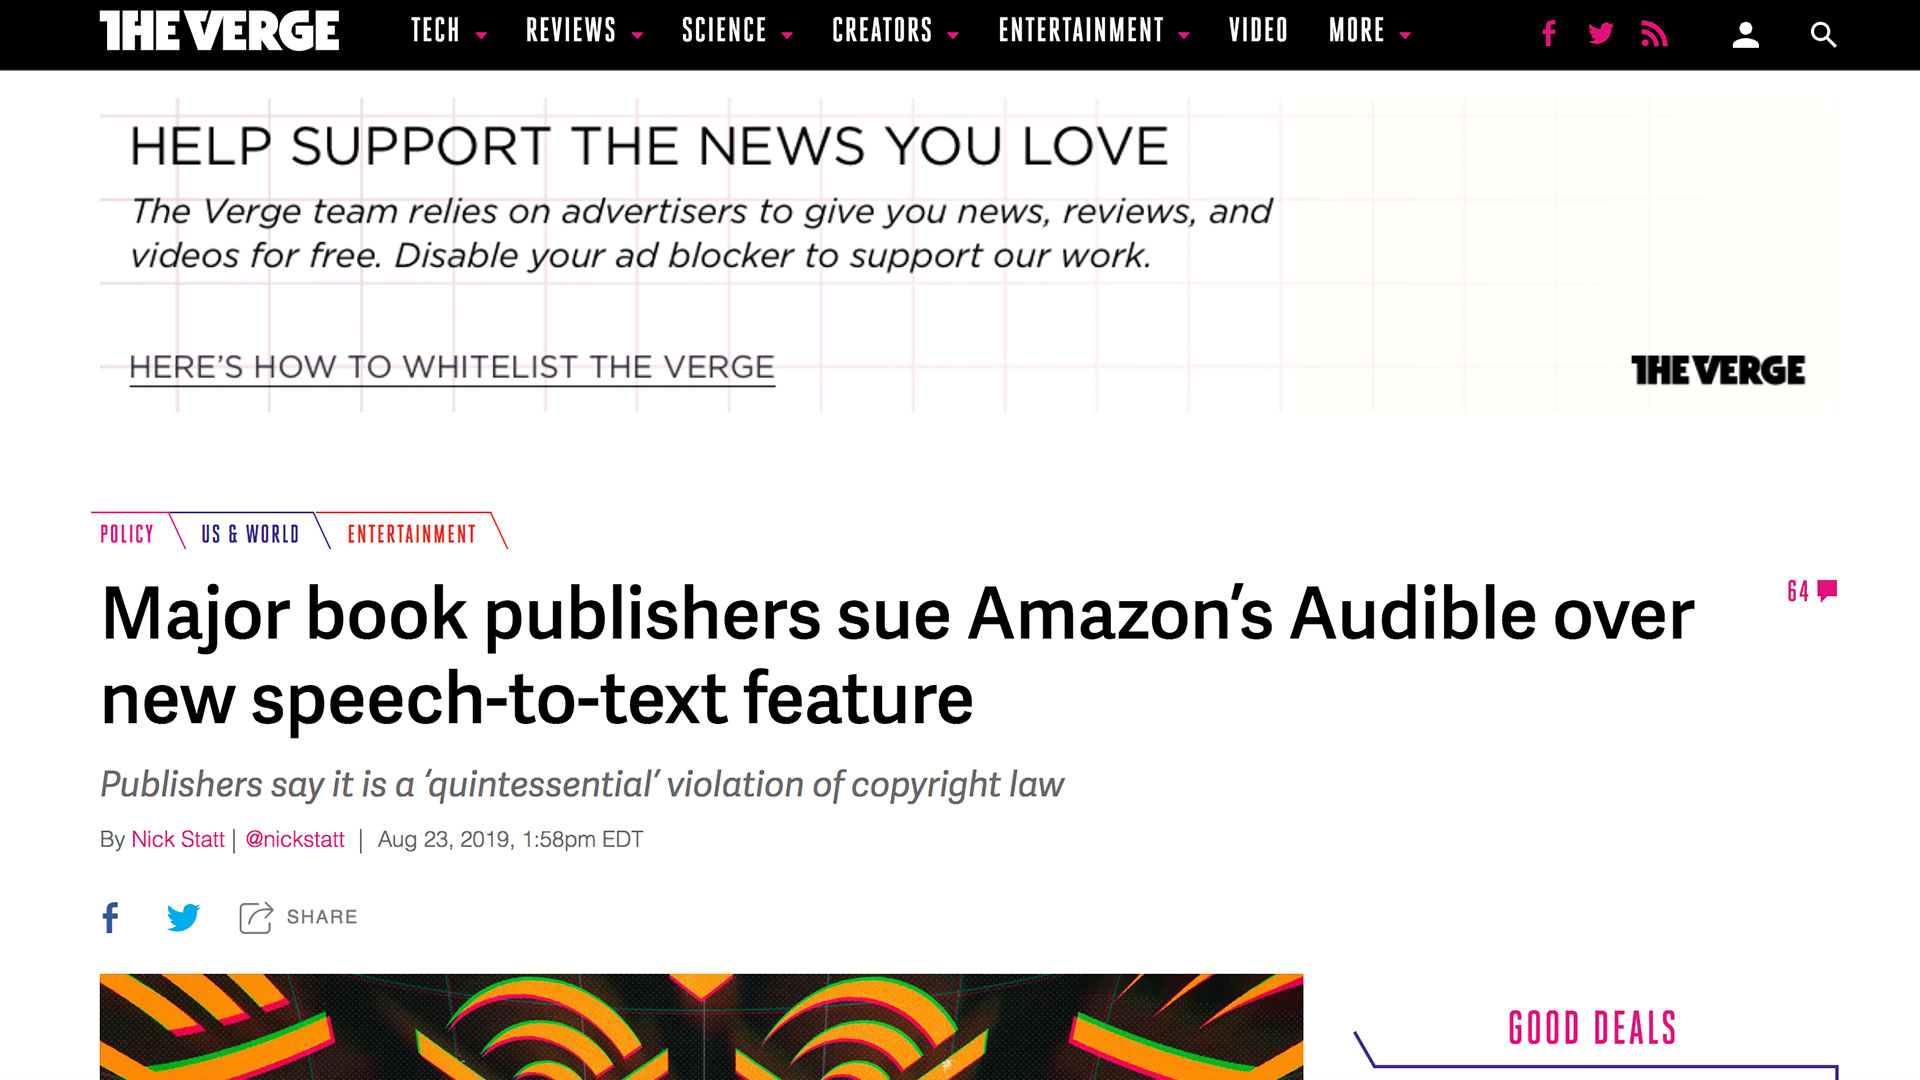 Fairness Rocks News Major book publishers sue Amazon's Audible over new speech-to-text feature